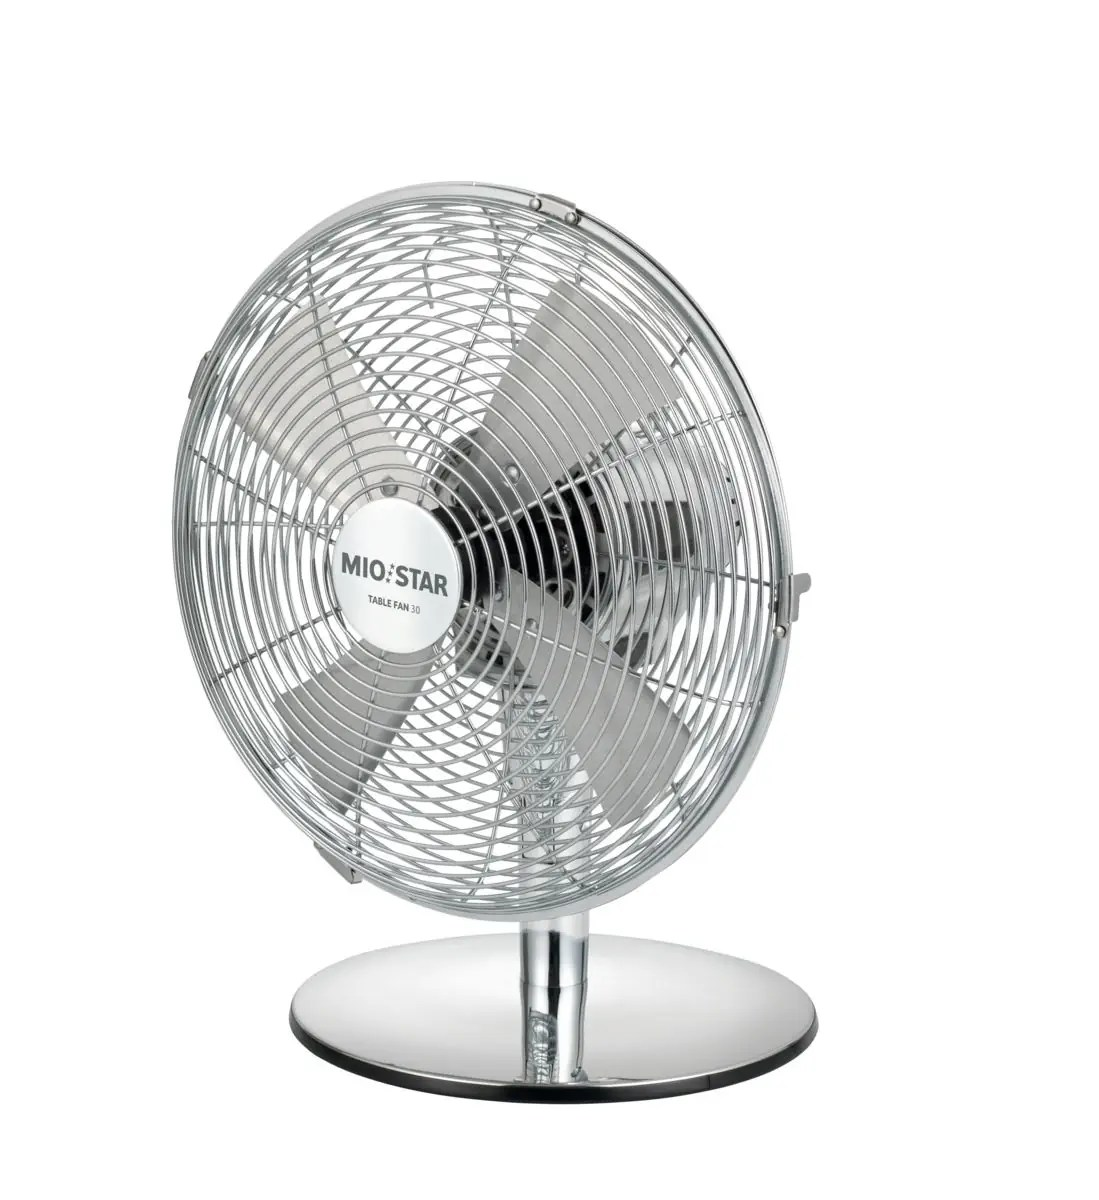 Magasin Ventilateur Mio Star Fan 30 Ventilateur De Table